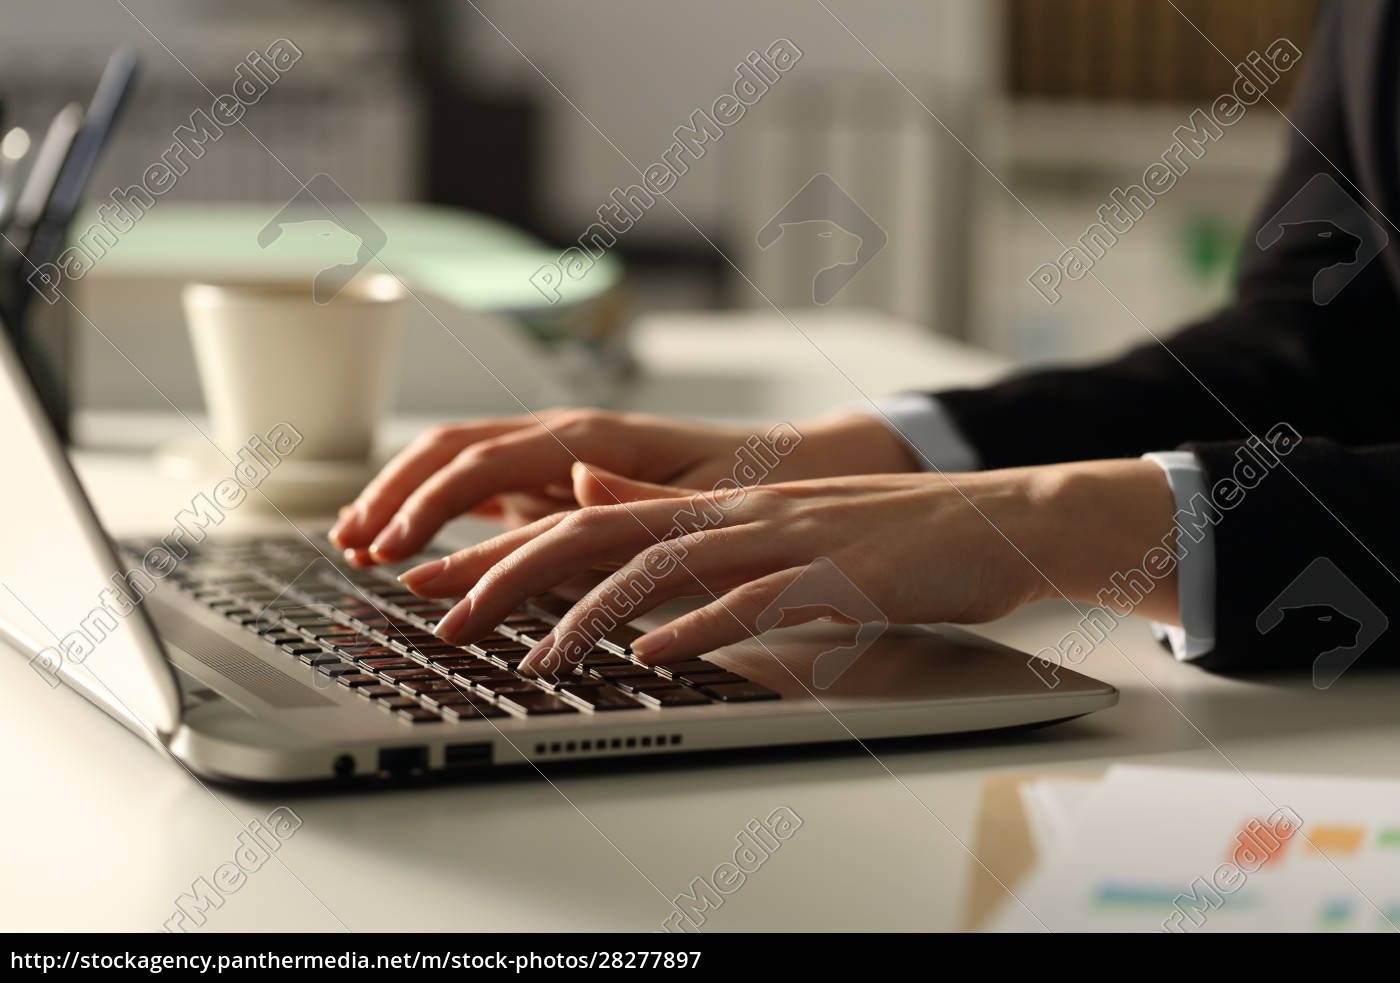 executive, woman, hands, typing, on, laptop - 28277897